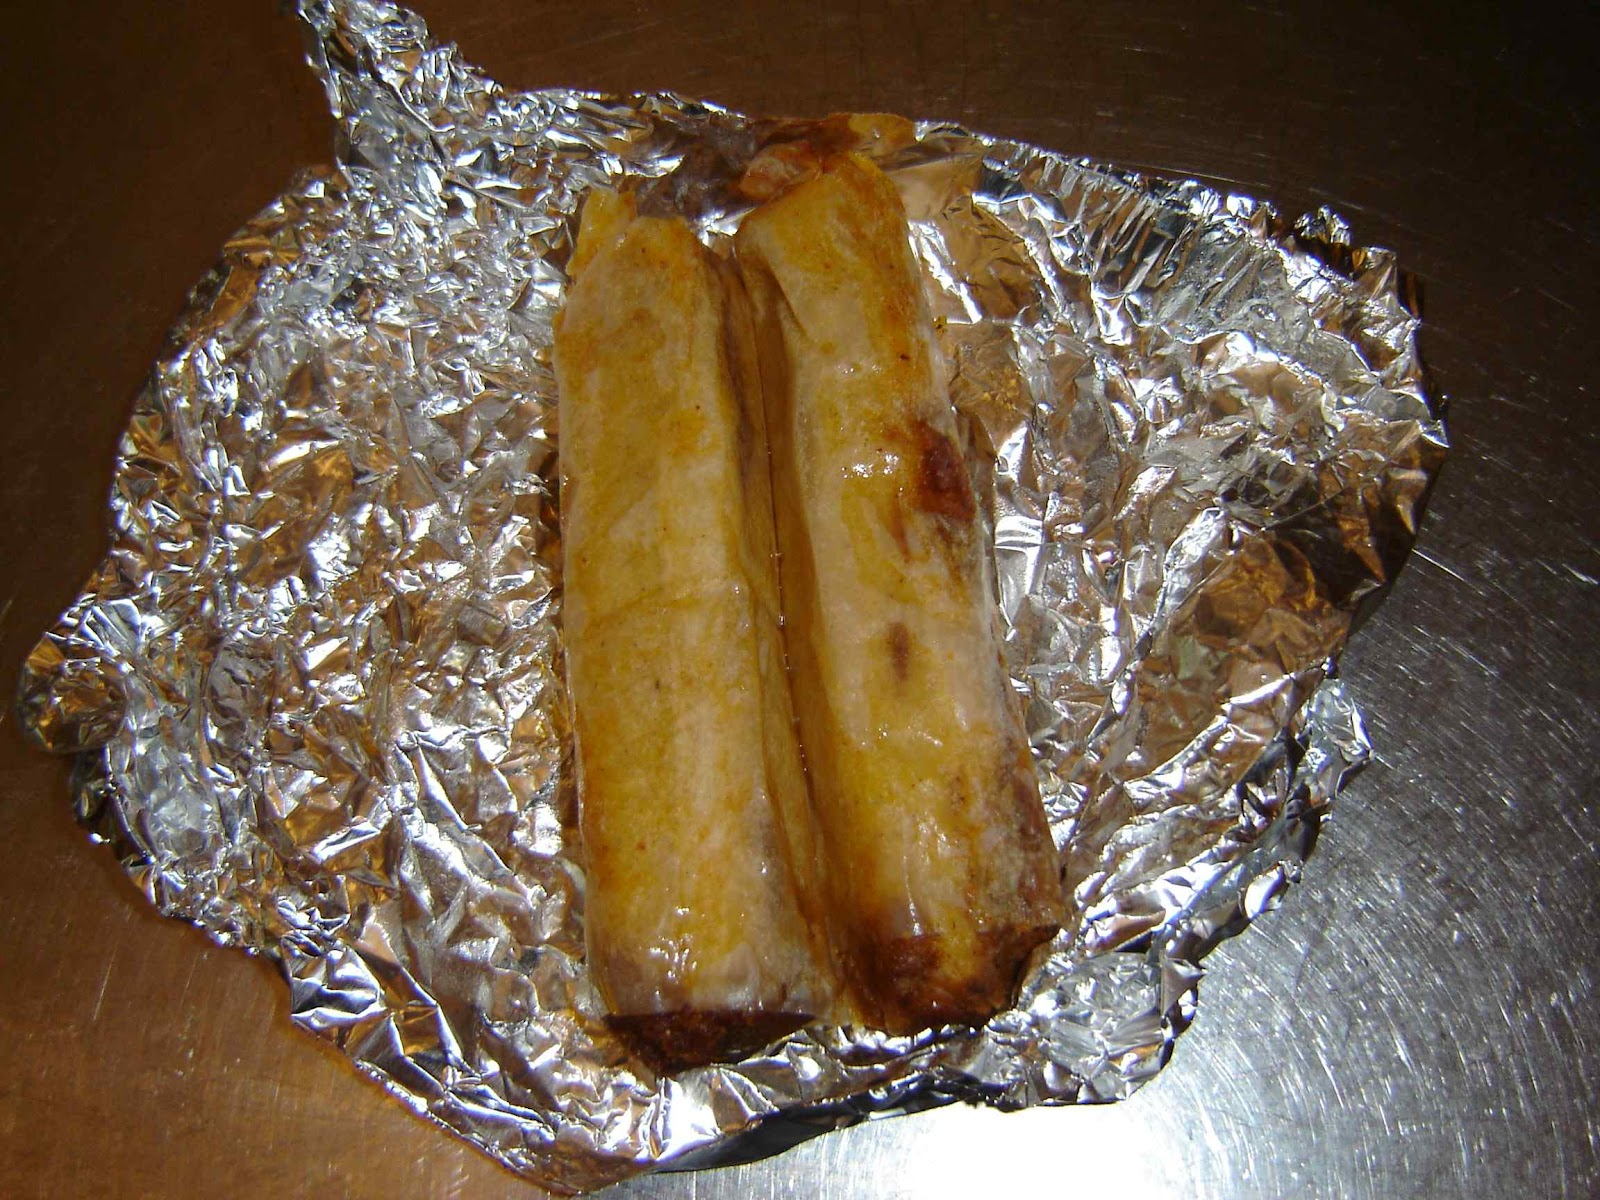 memphis que hot tamales from a trailer on jackson avenue